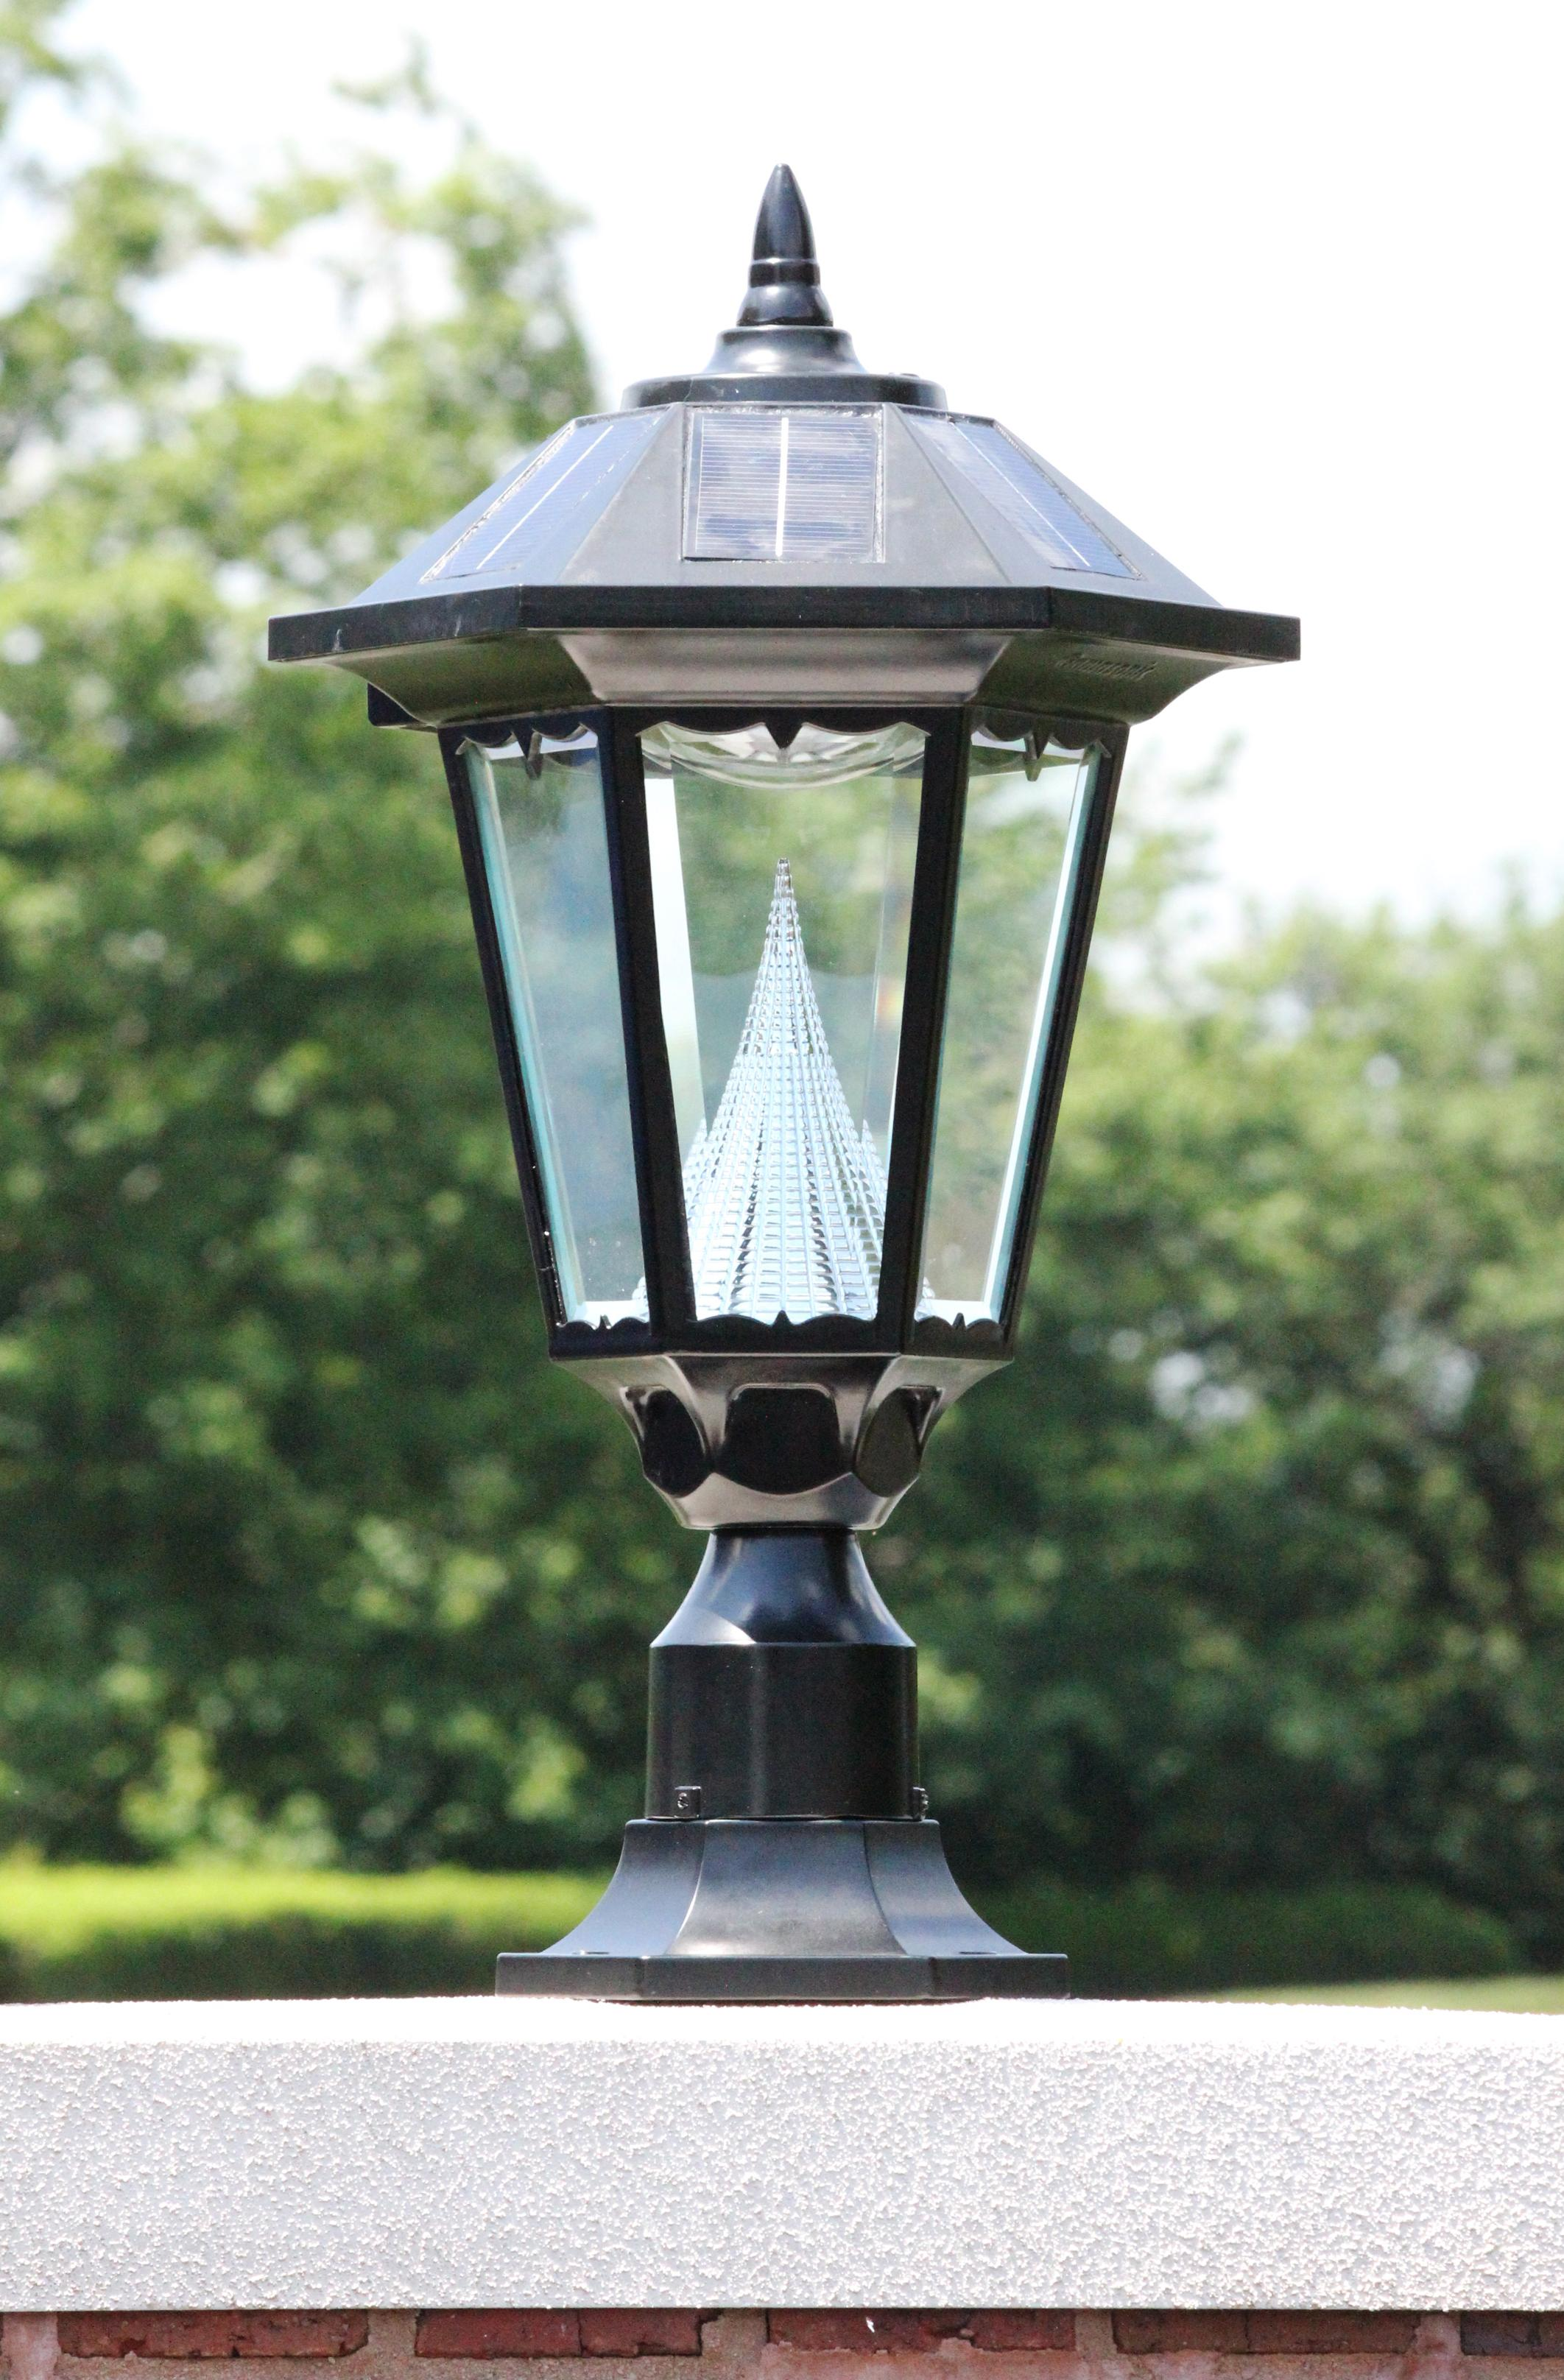 windsor gs 99f post mount solar light fixture comes in a black finish